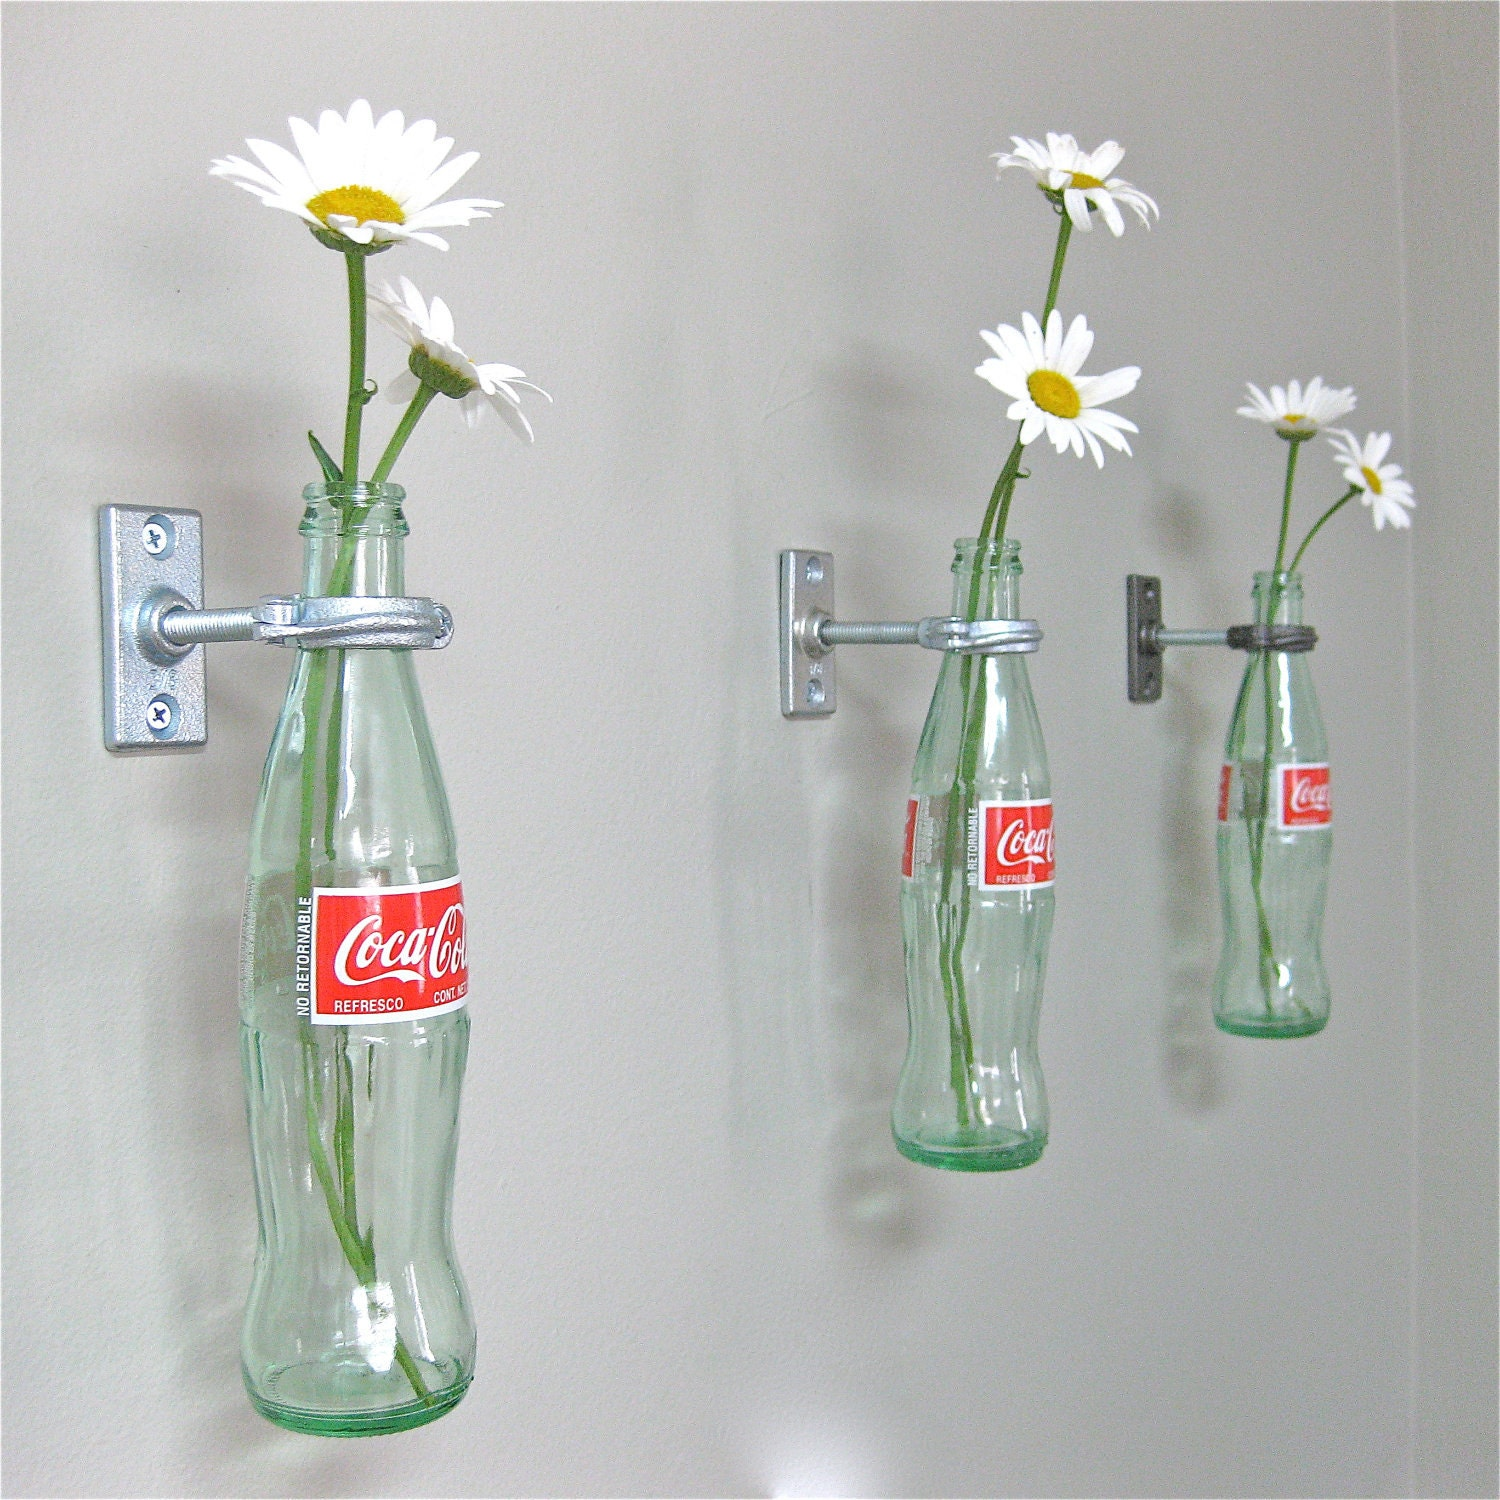 Retro Decor 4 Cocacola Bottle Hanging Vases  Wall Decor  Retro Decor